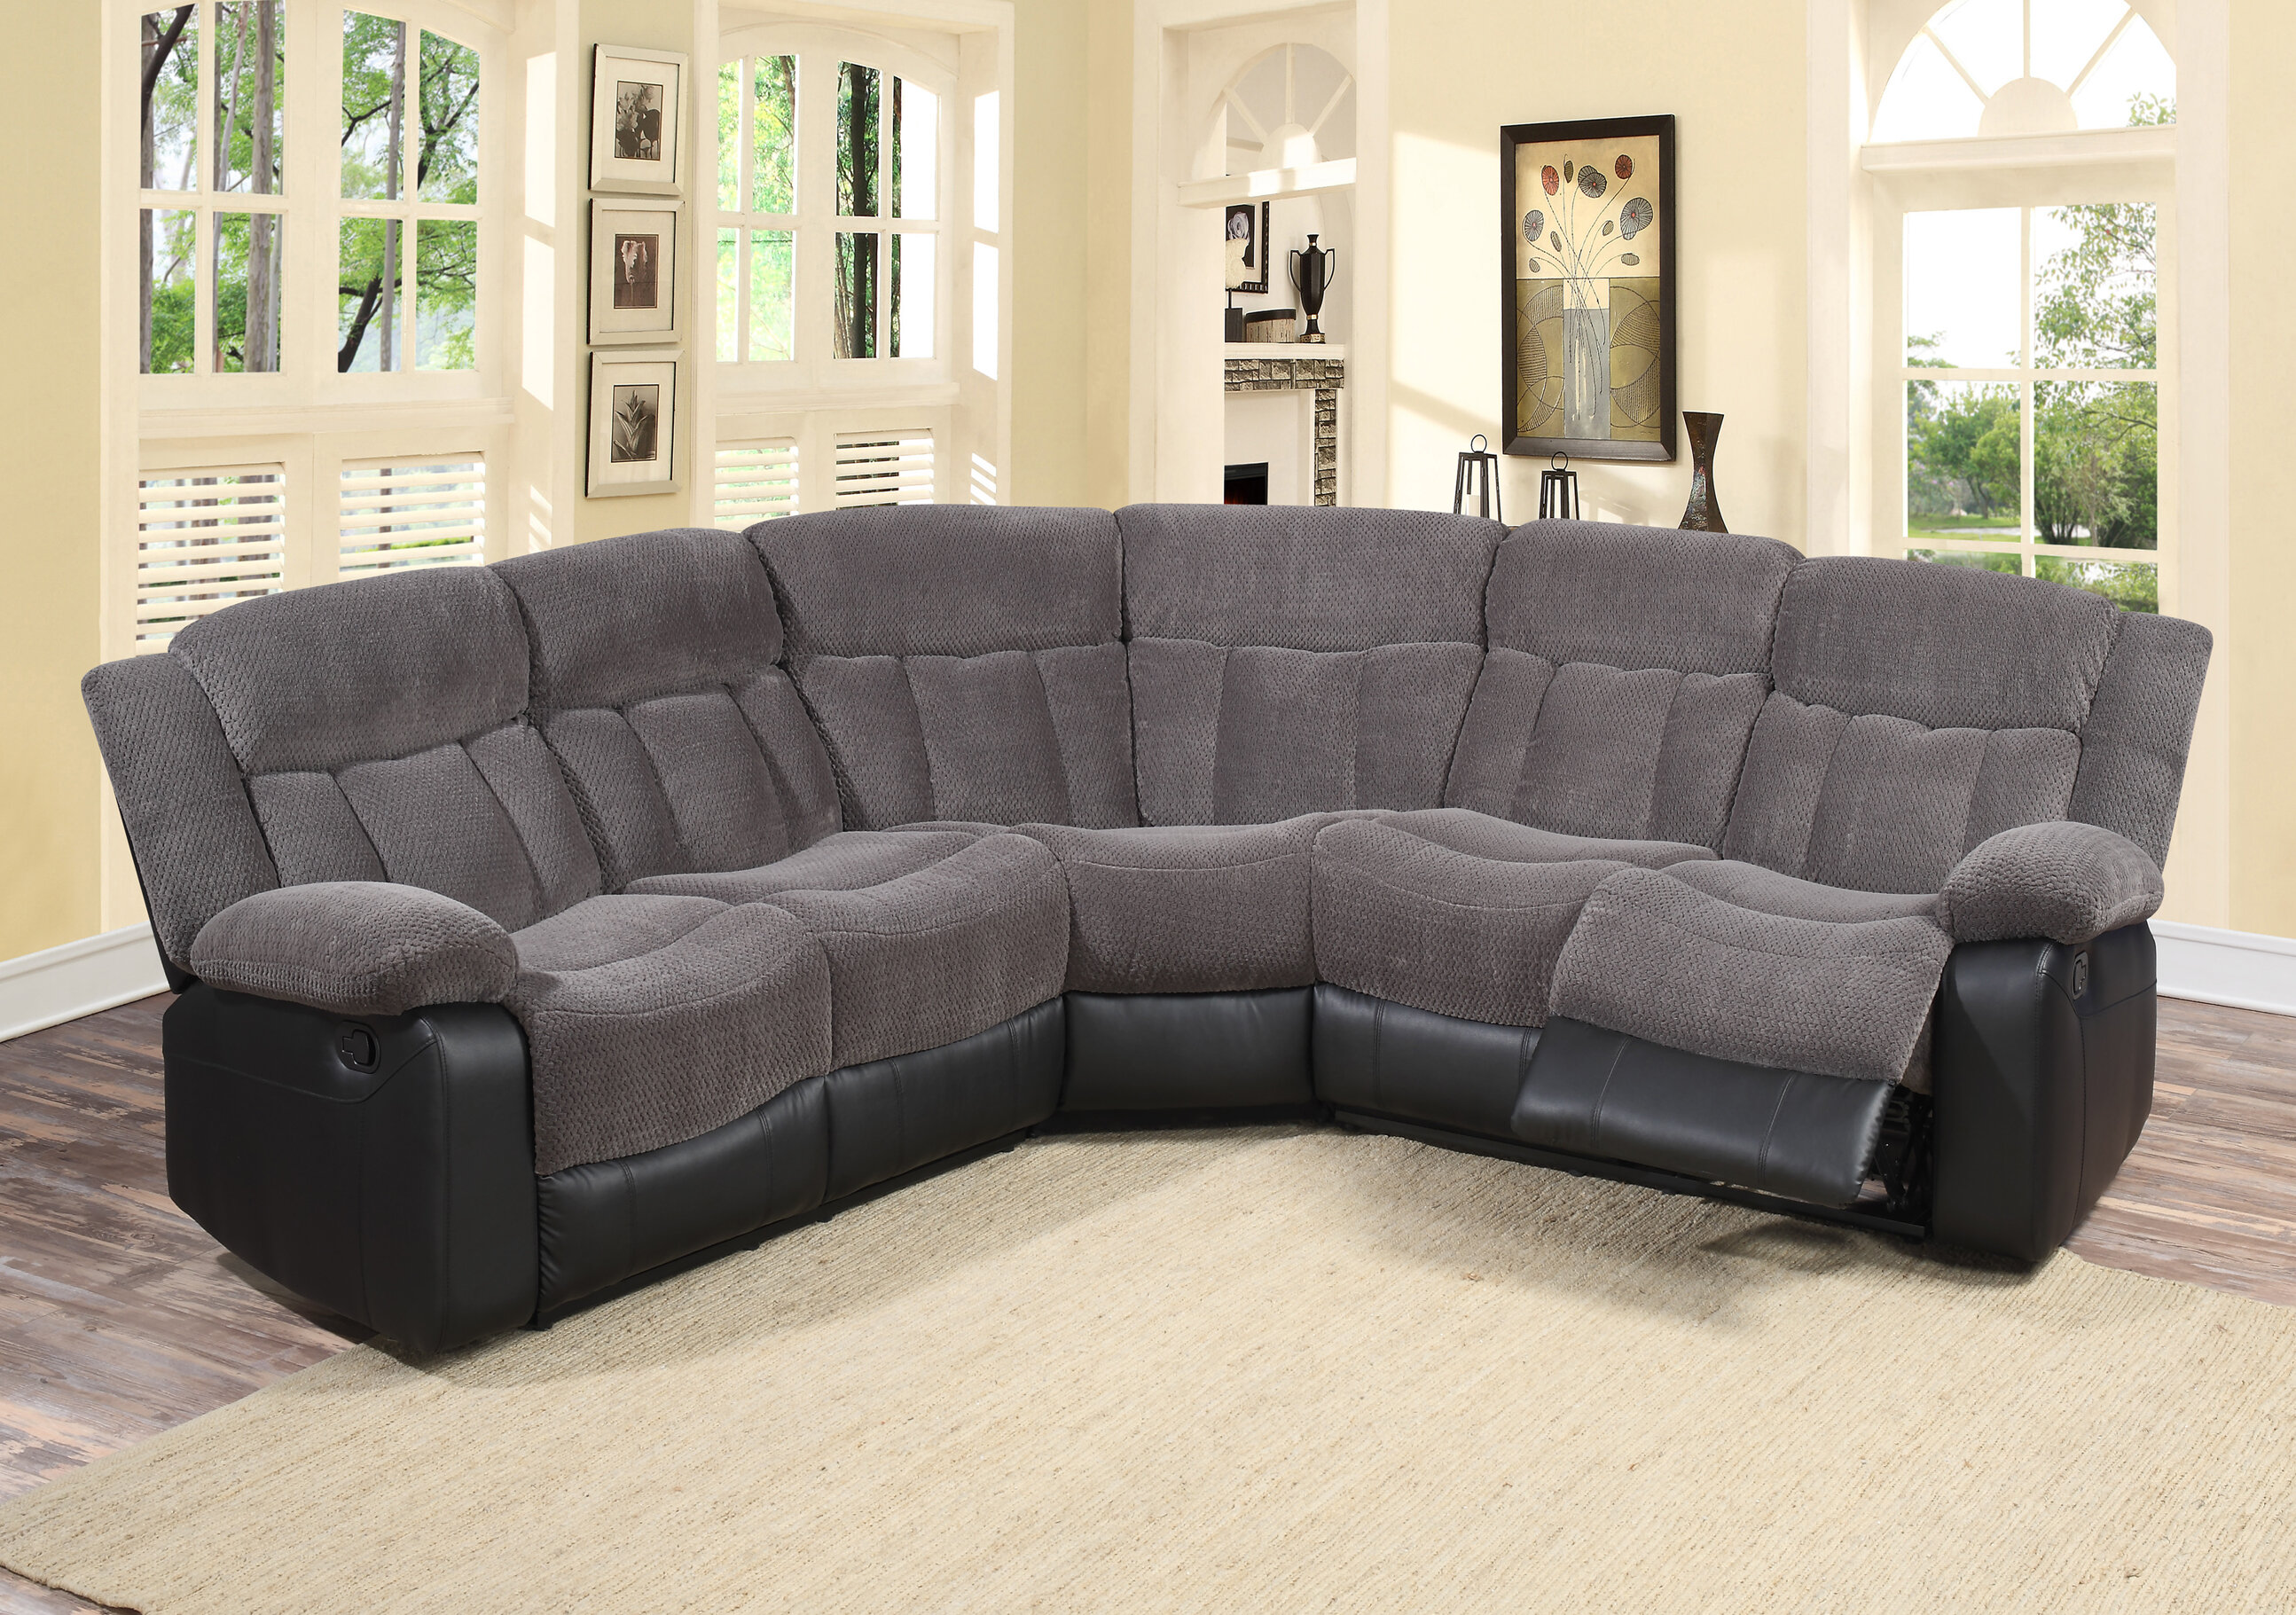 place sectional leather with img reclining furniture my usb power products ports